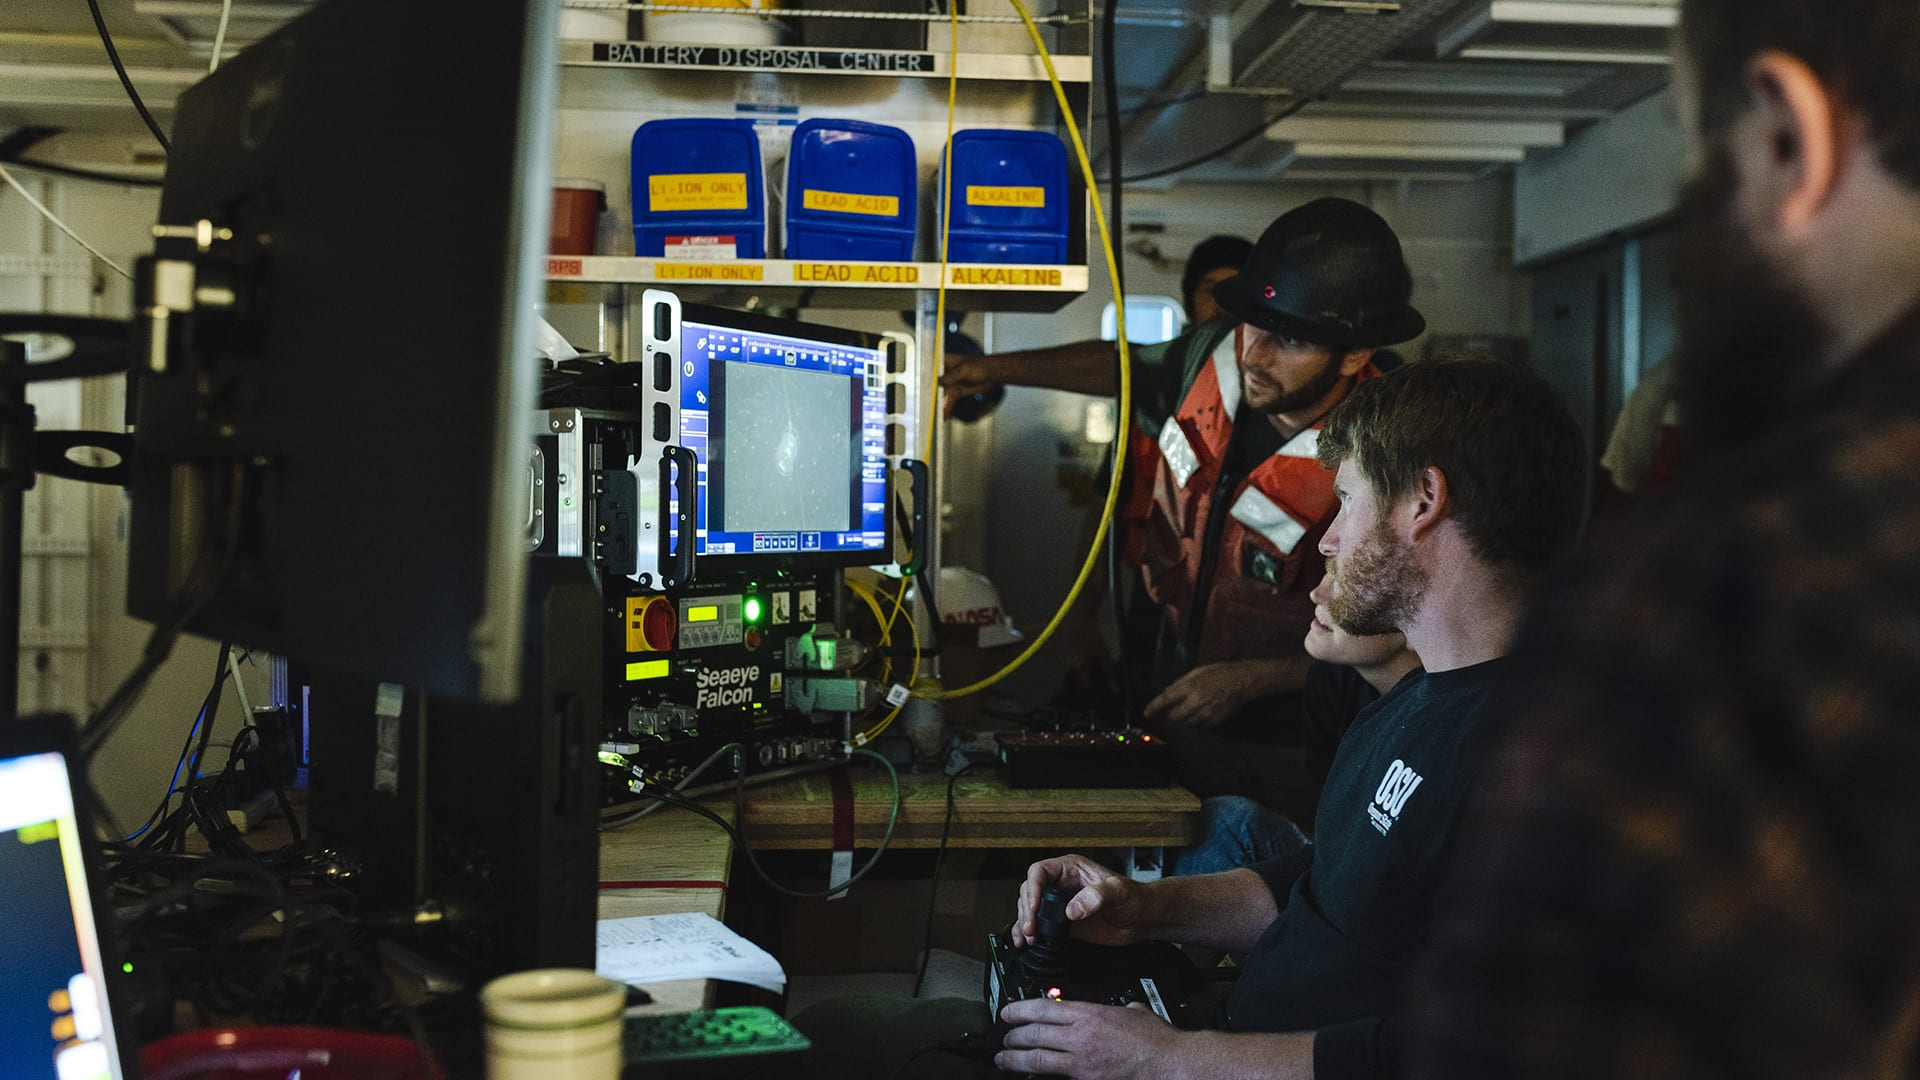 WHOI Engineer Jared Schwartz pilots the remotely operated vehicle, Seaeye Falcon to investigate an unrecovered mooring anchor. (Photo by Daniel Hentz, Woods Hole Oceanographic Institution)